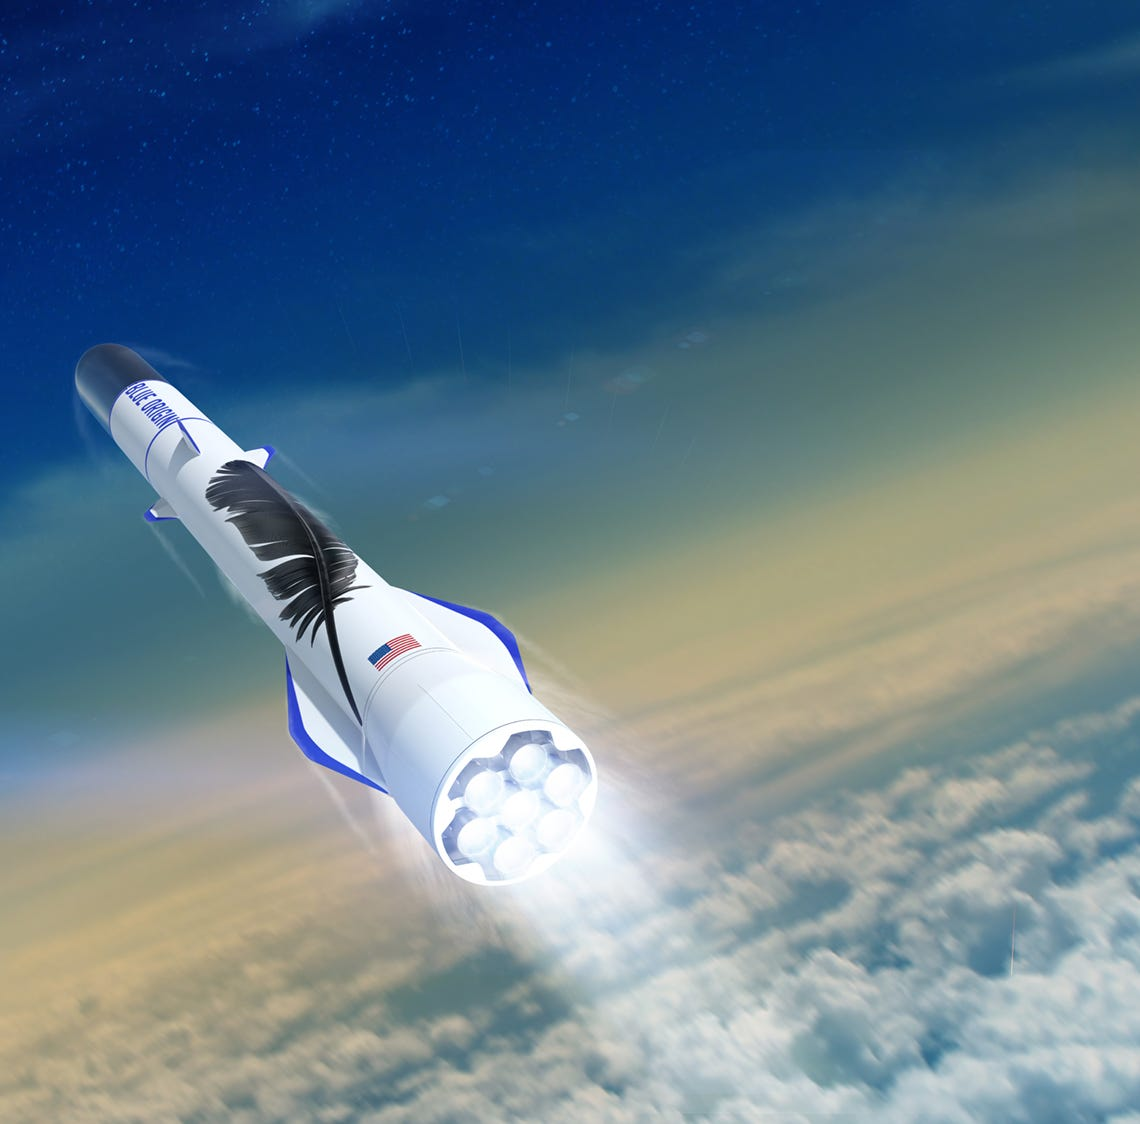 Air Force awards major contracts to ULA, Northrop Grumman and Blue Origin